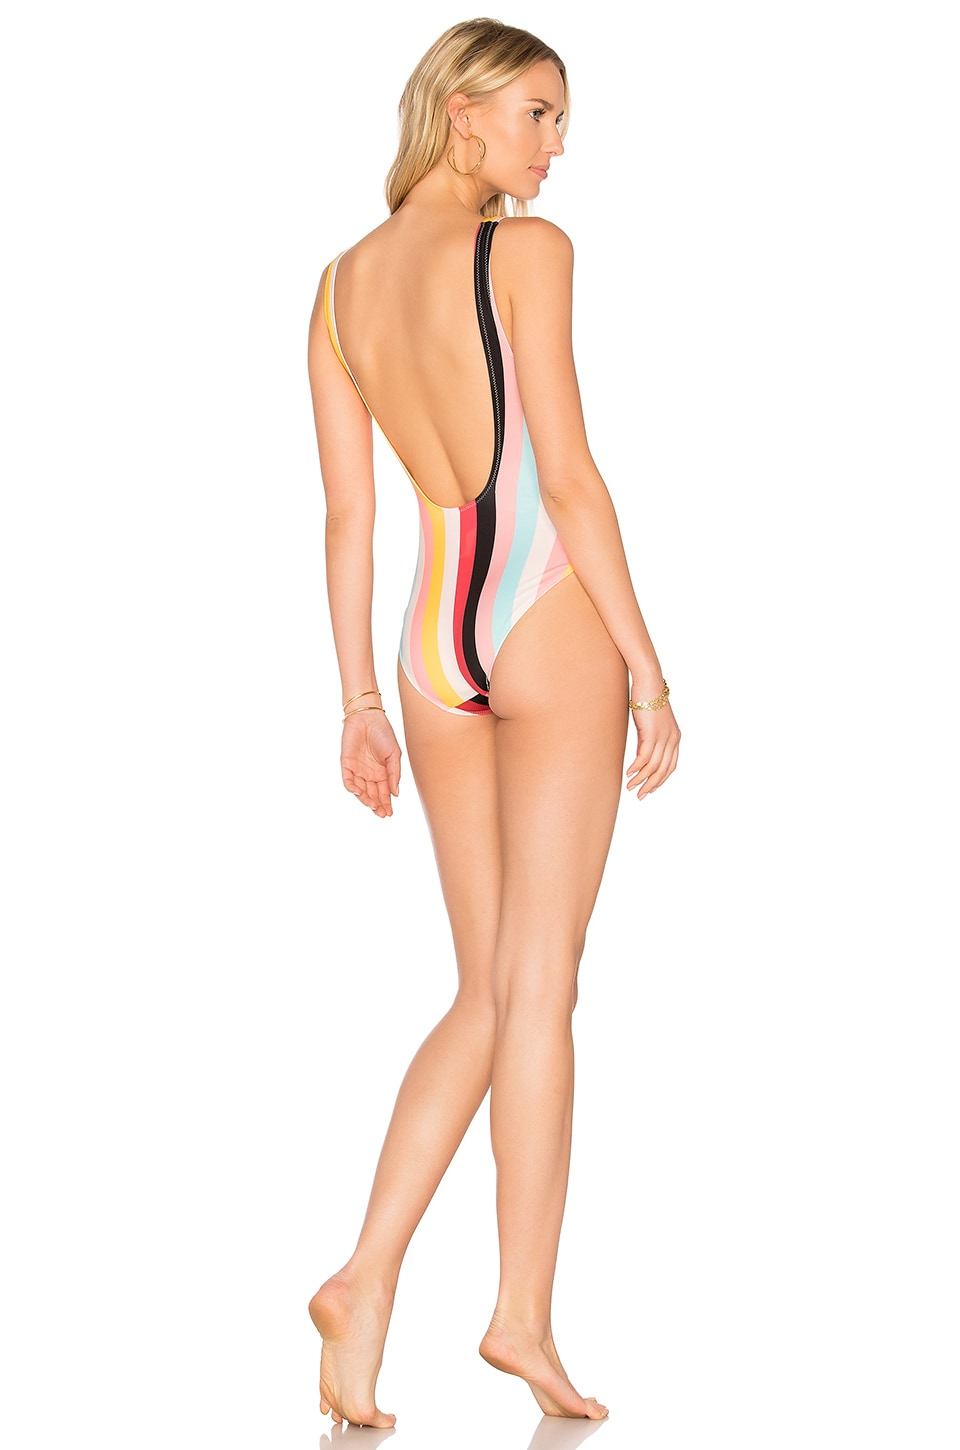 The Anne Marie One Piece